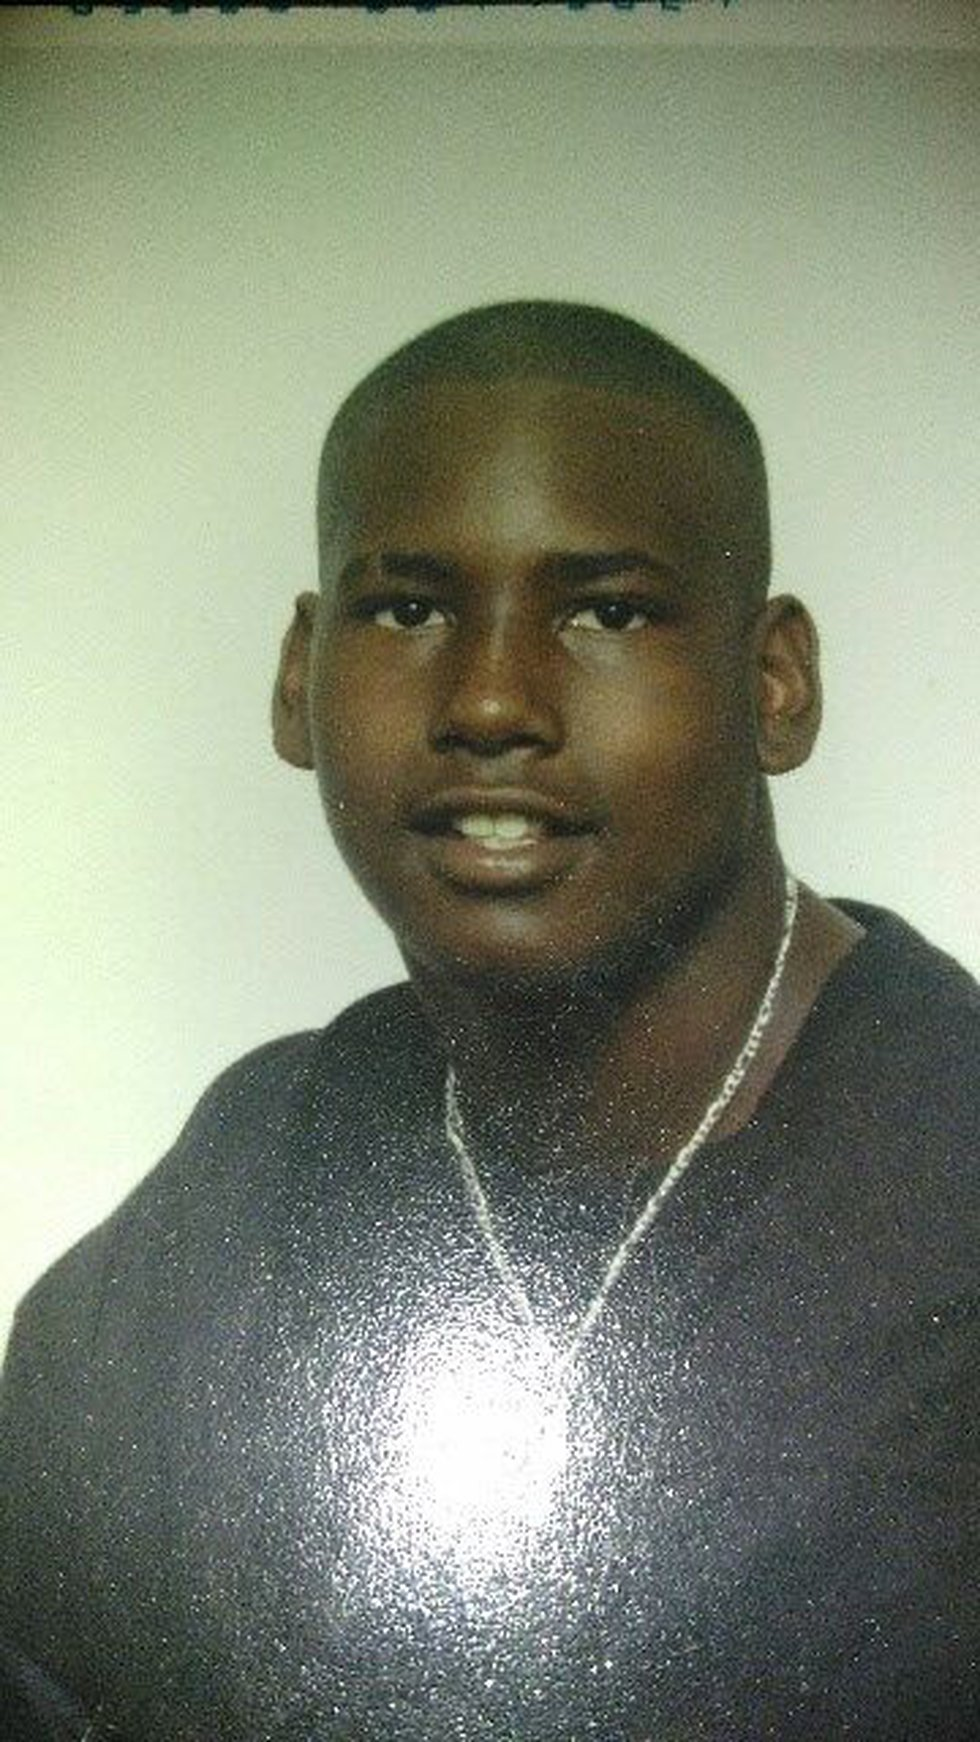 Tory Sanders died at the jail in an incident that injured six law enforcement officers....